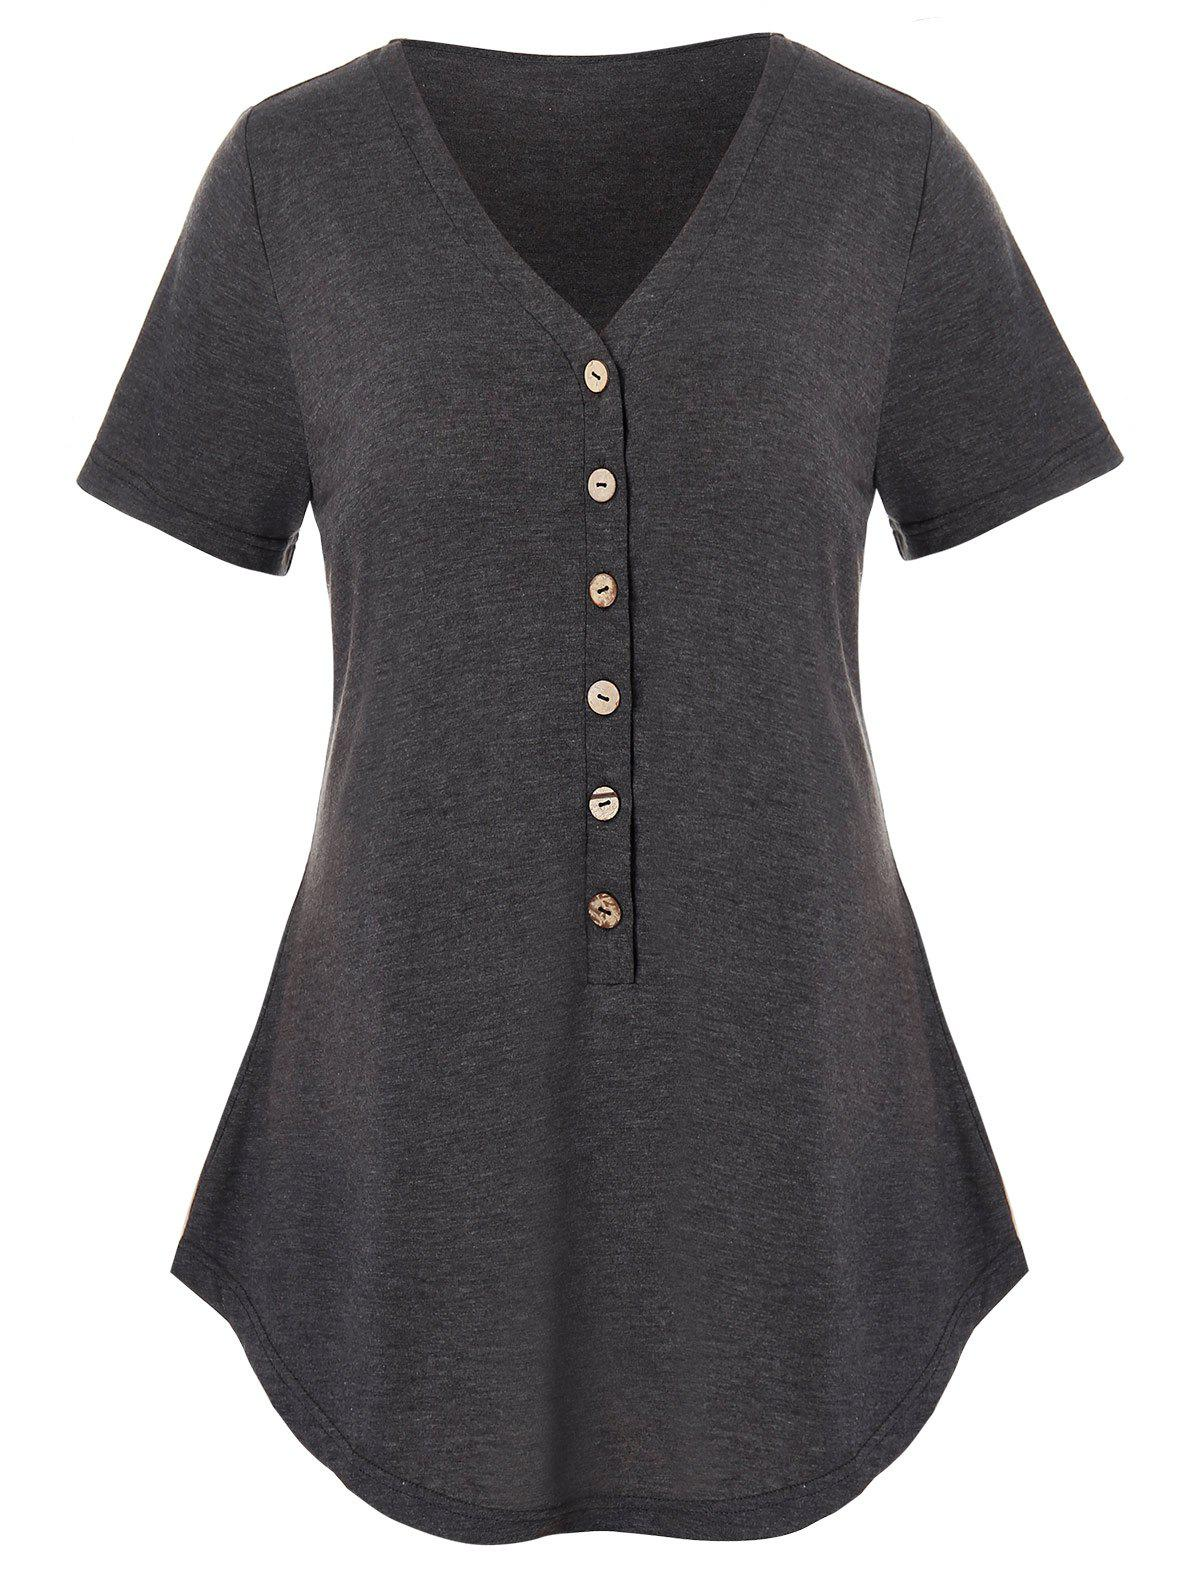 Plus Size Half Button Heathered Curved T Shirt, Carbon gray